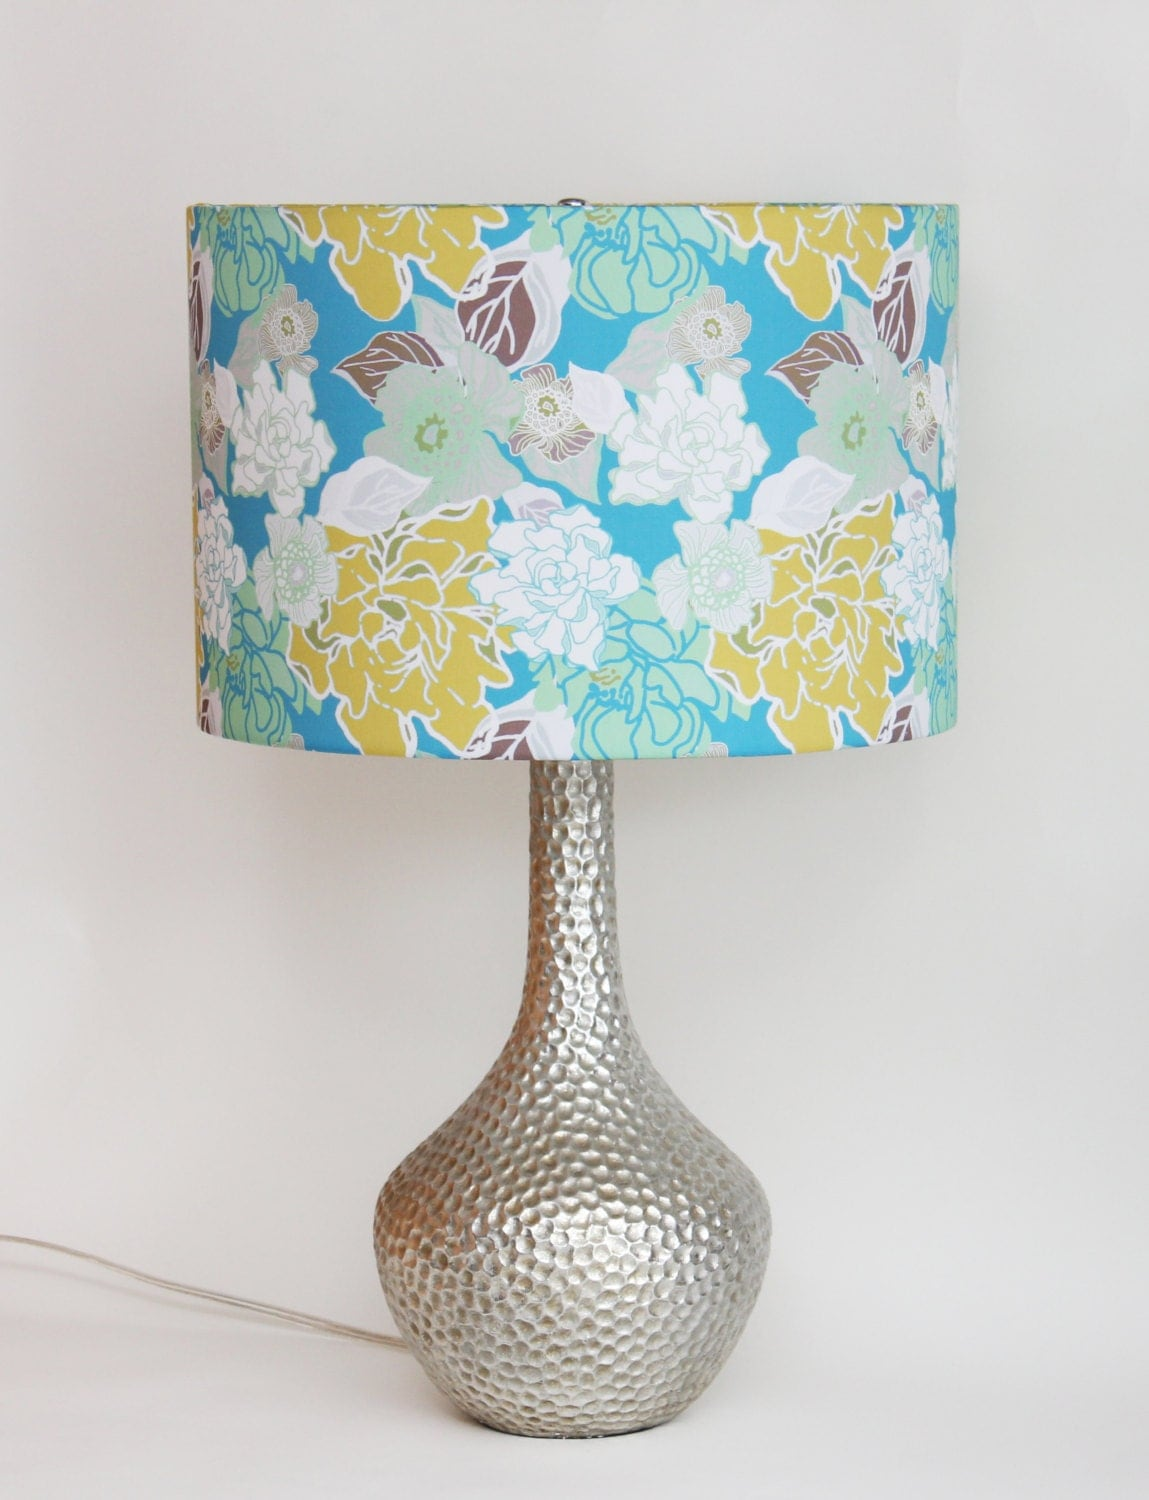 lamp shade 14 drum vintage floral turquoise yellow mint white. Black Bedroom Furniture Sets. Home Design Ideas